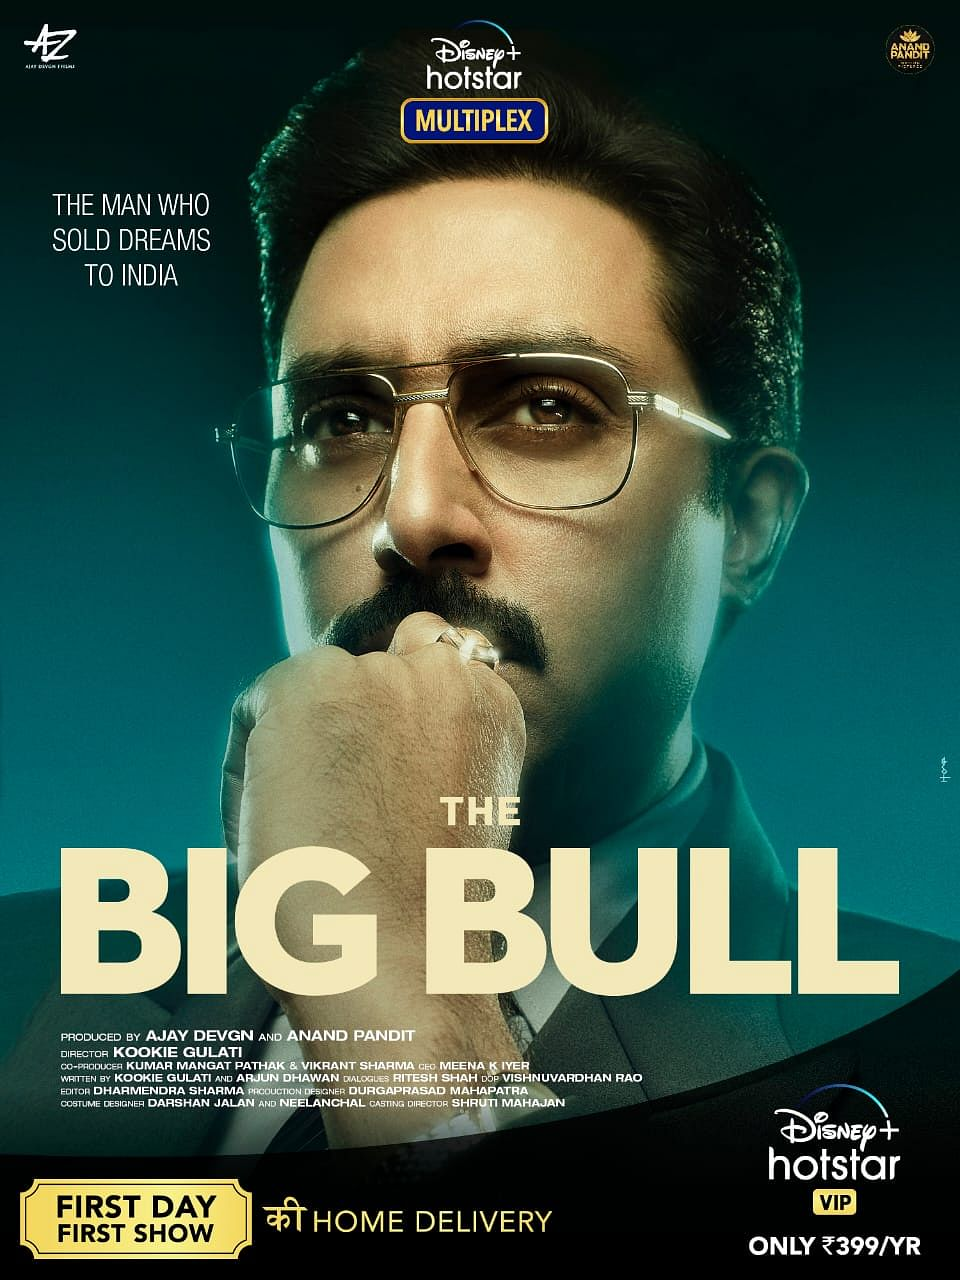 Abhishek Bachchan plays a stock broker in <i>The Big Bull </i>.